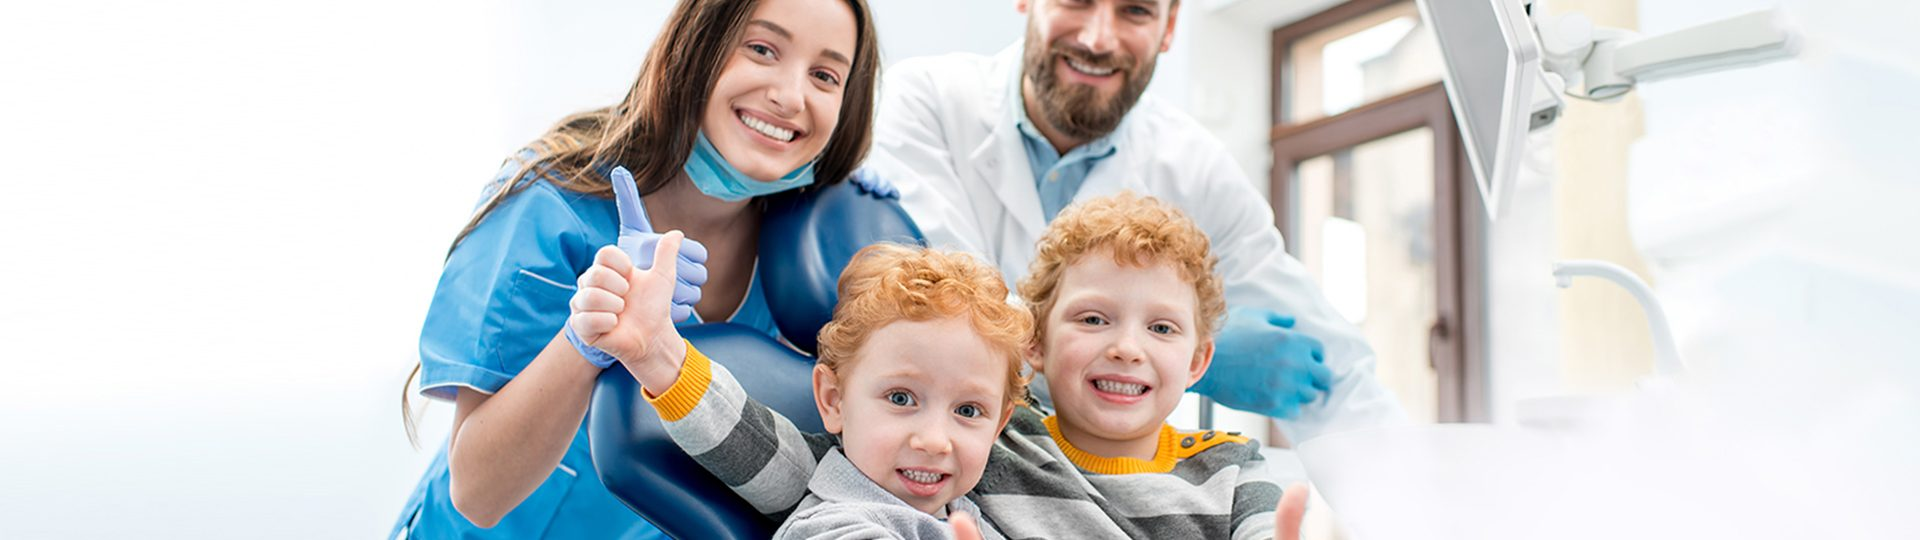 What are the benefits of a family dental practice?